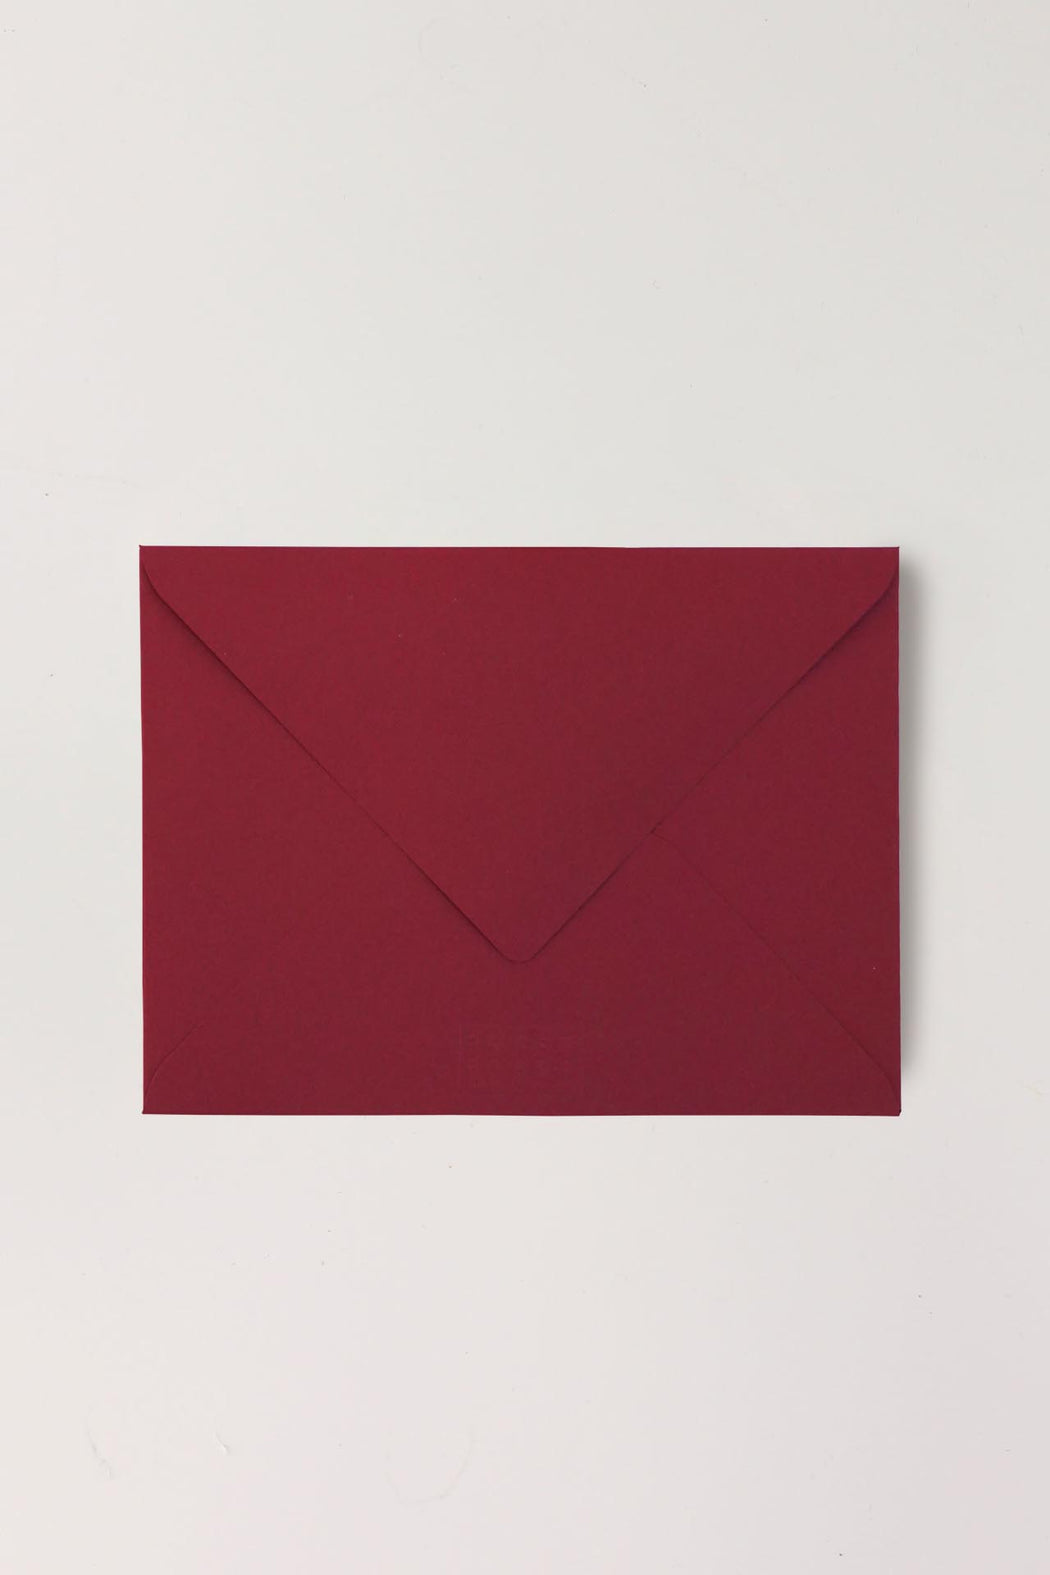 B6 Scarlet Red Envelopes